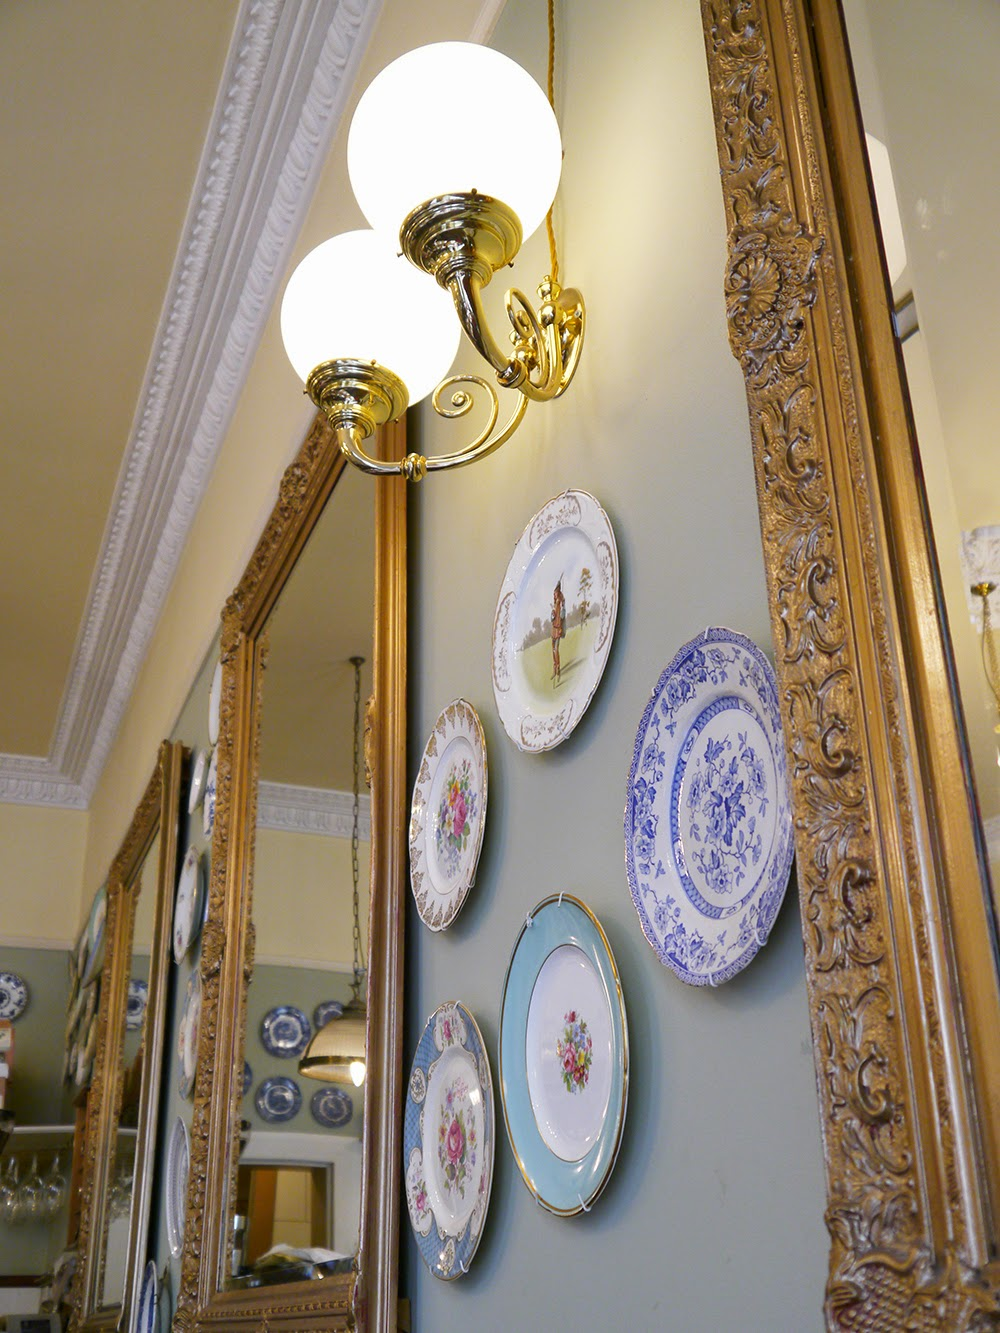 the Butterfly and the Pig, ornate, tea room, Bagth Street, Glasgow, cake, recommended, vintage plate, gilded